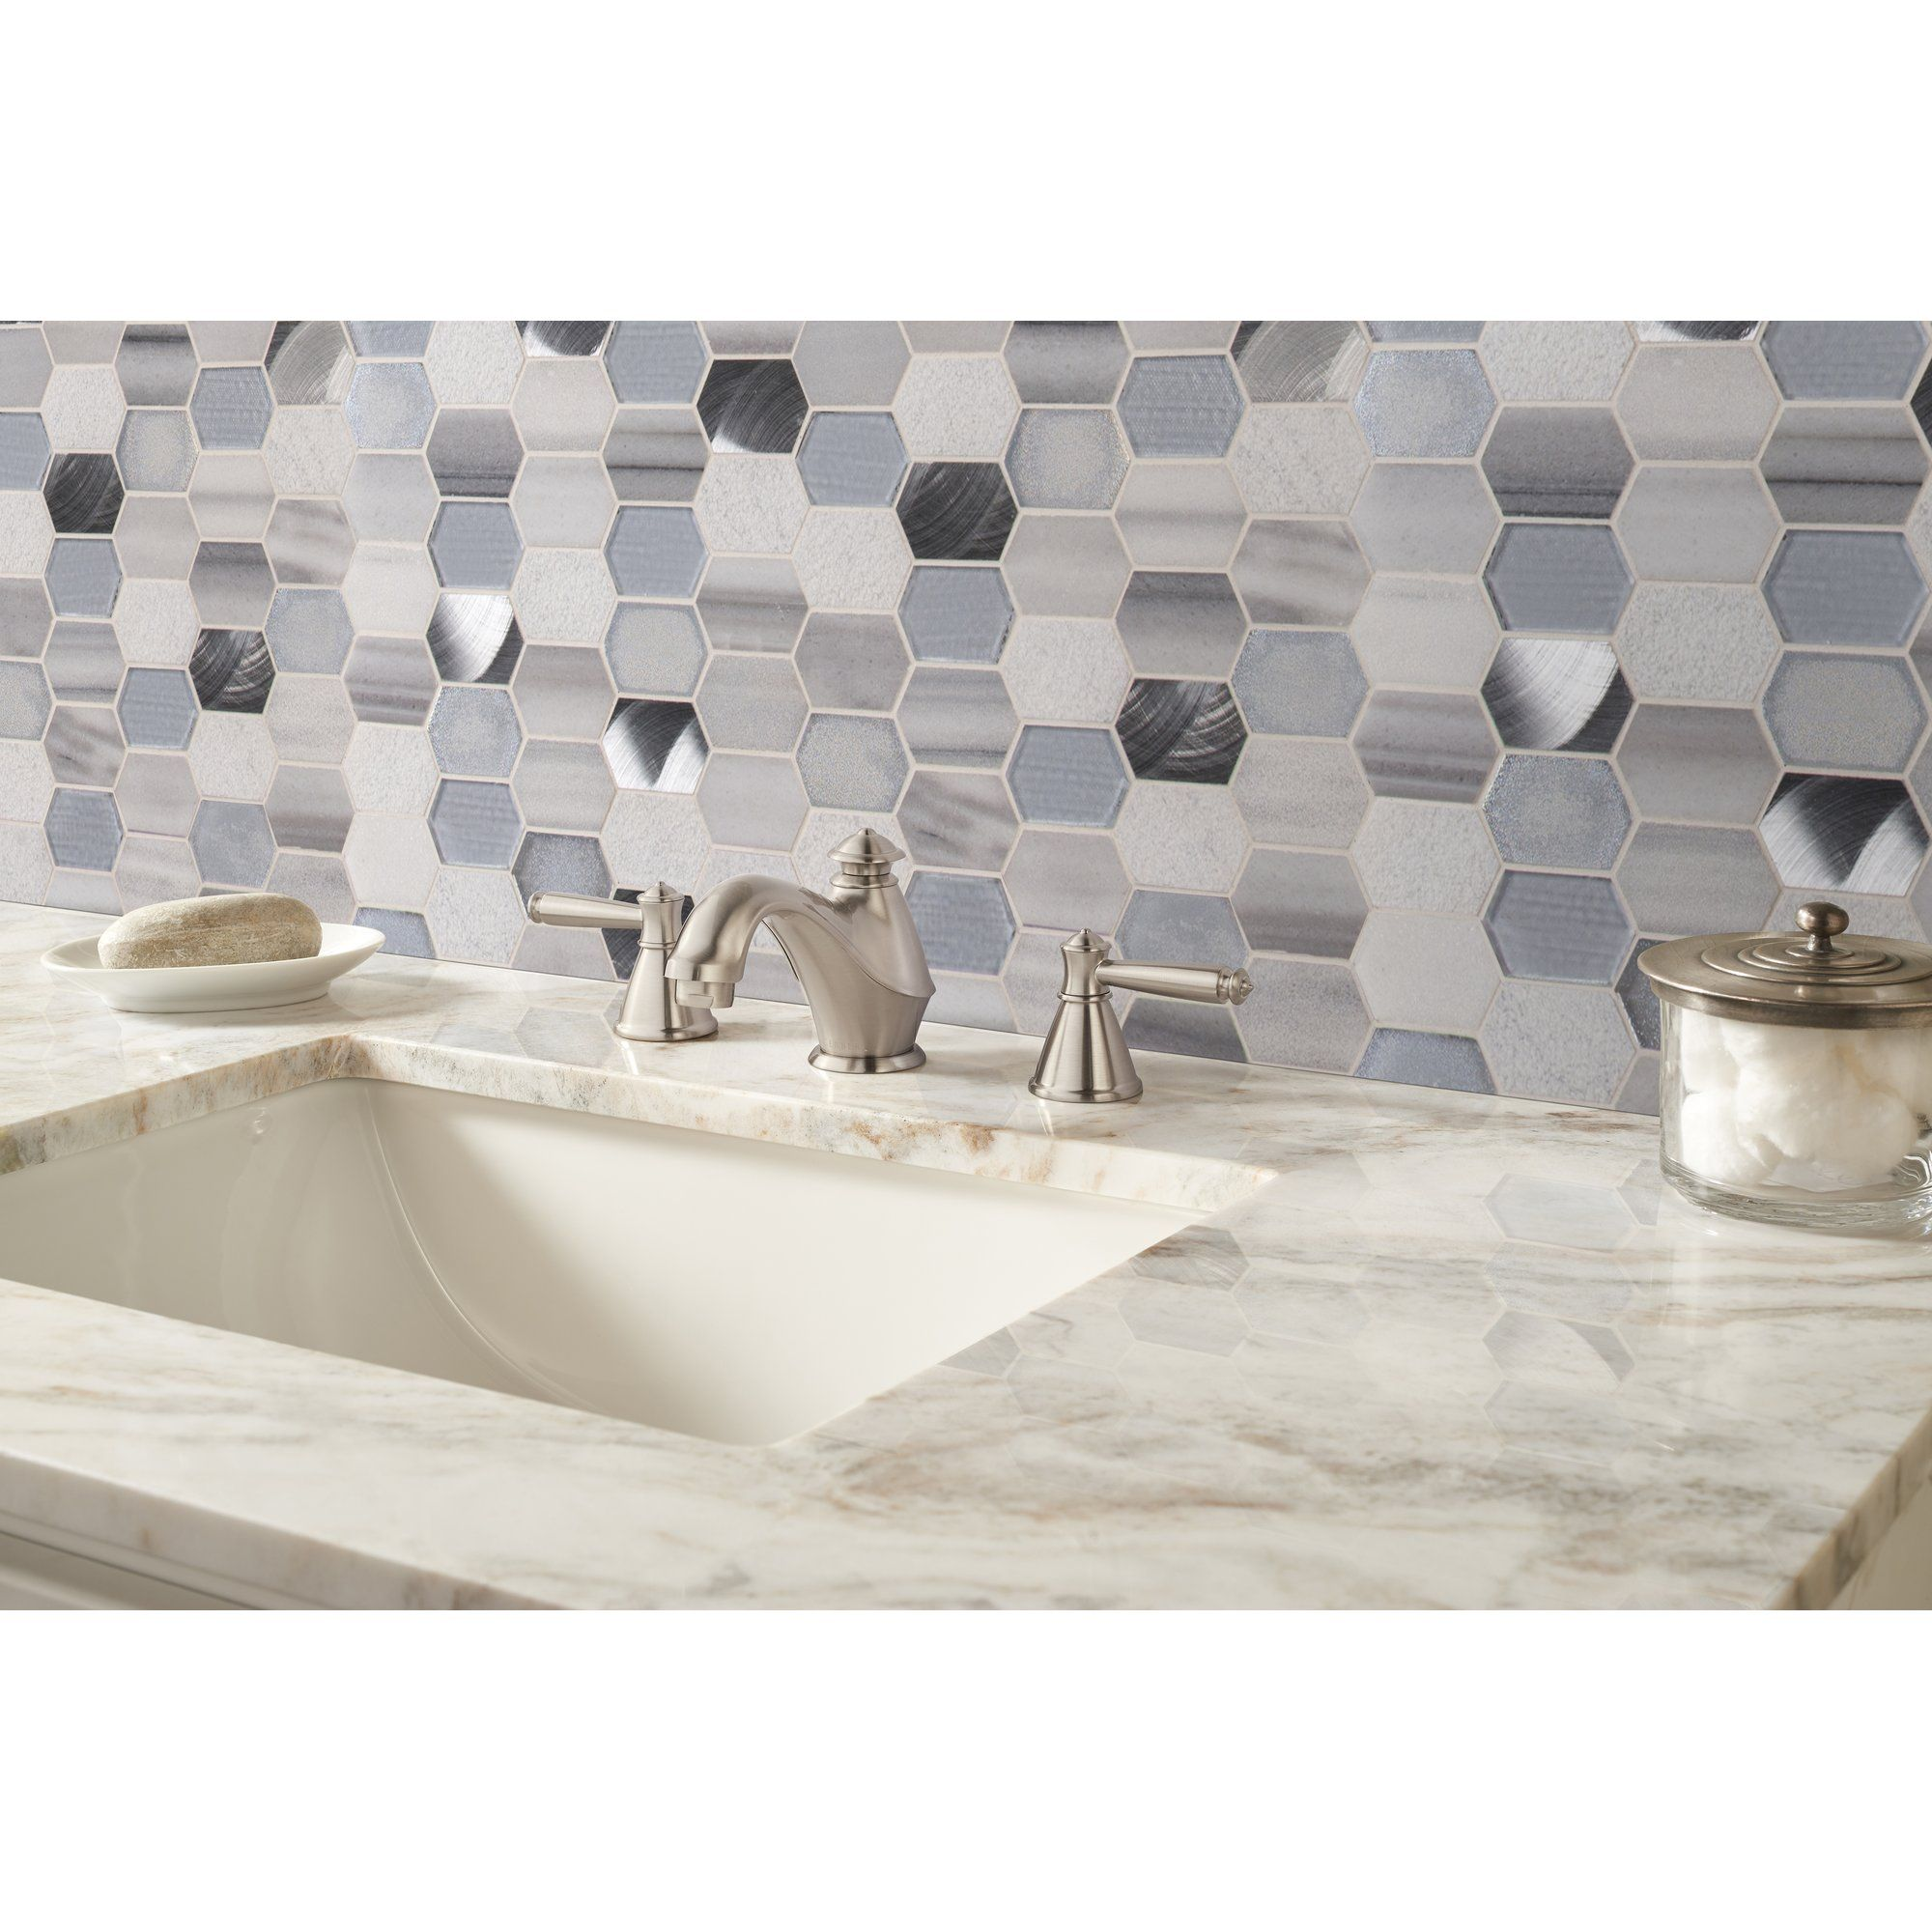 9 Harlow Picket Pattern Glass Stone Mosaic Stone Mosaic Tile